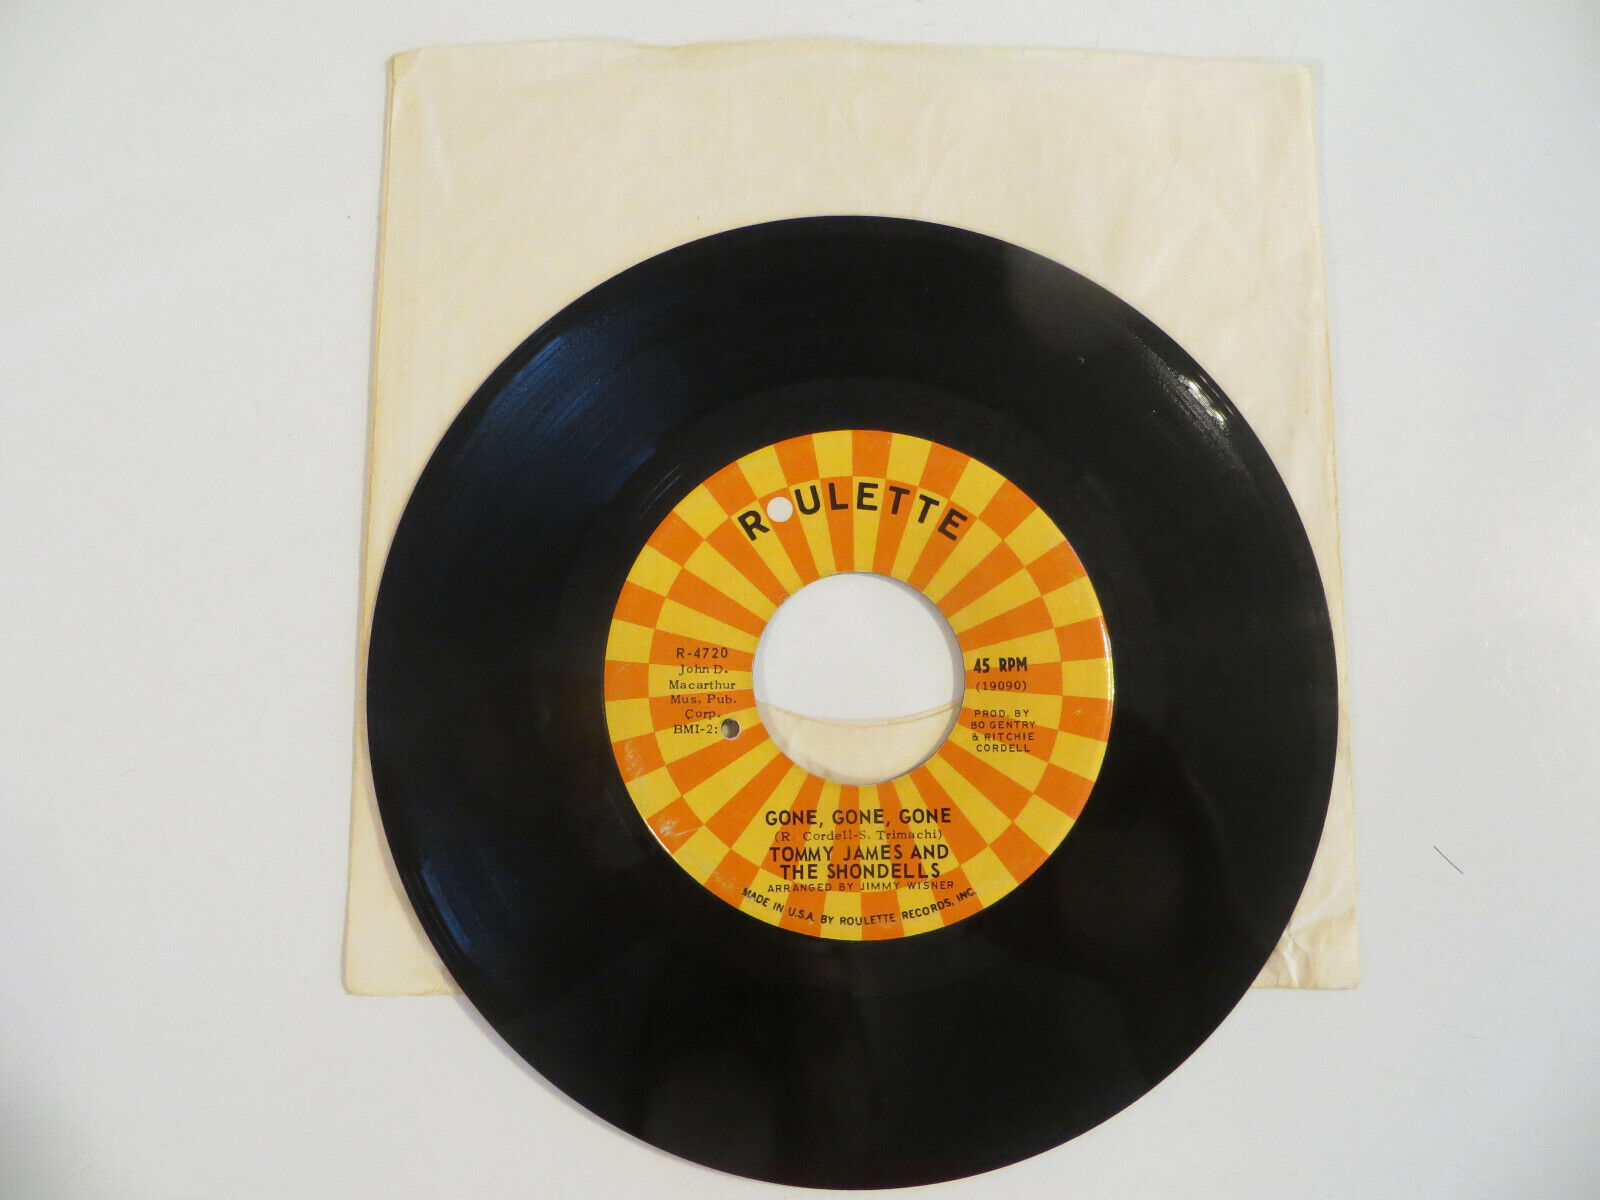 TOMMY JAMES AND THE SHONDELLS I Think We re Alone Now 45 RPM 7 1967 Roulette - $1.99